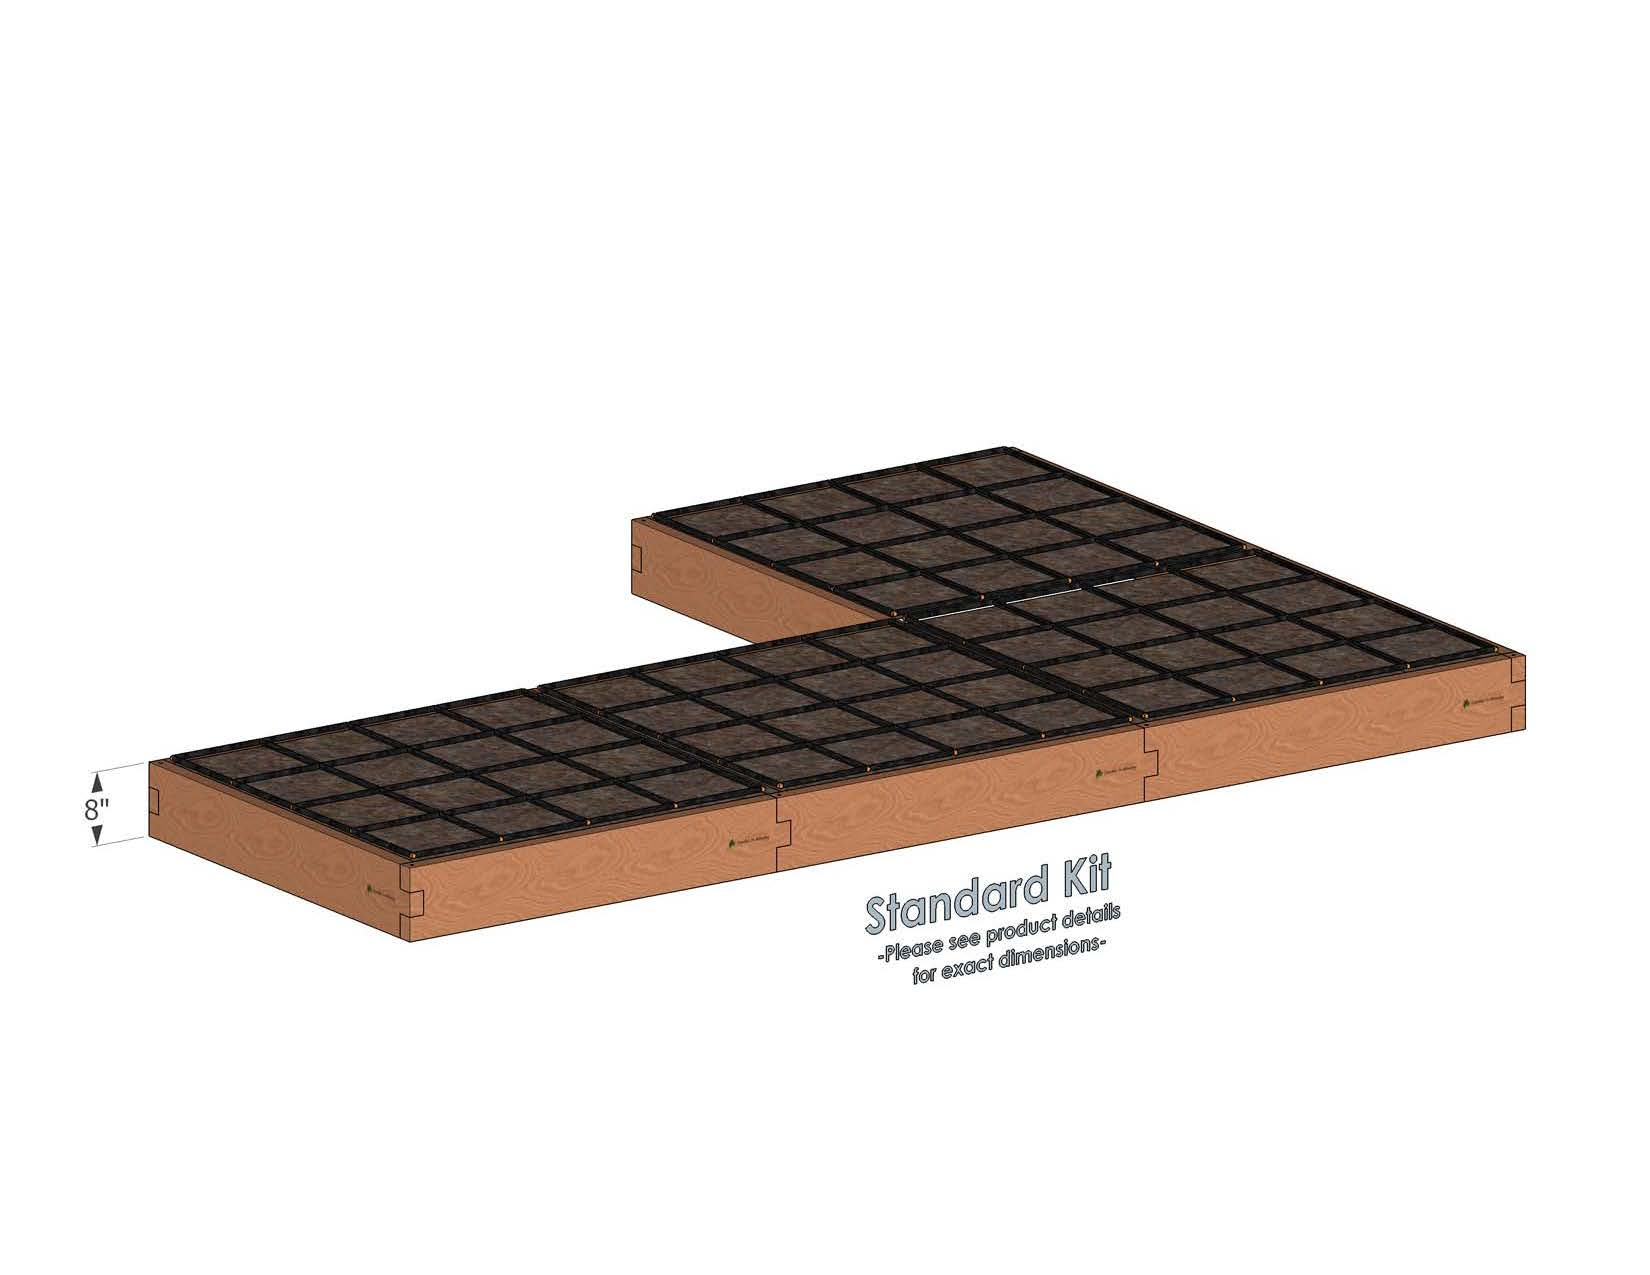 L Shaped Raised Garden Kit Standard Bed